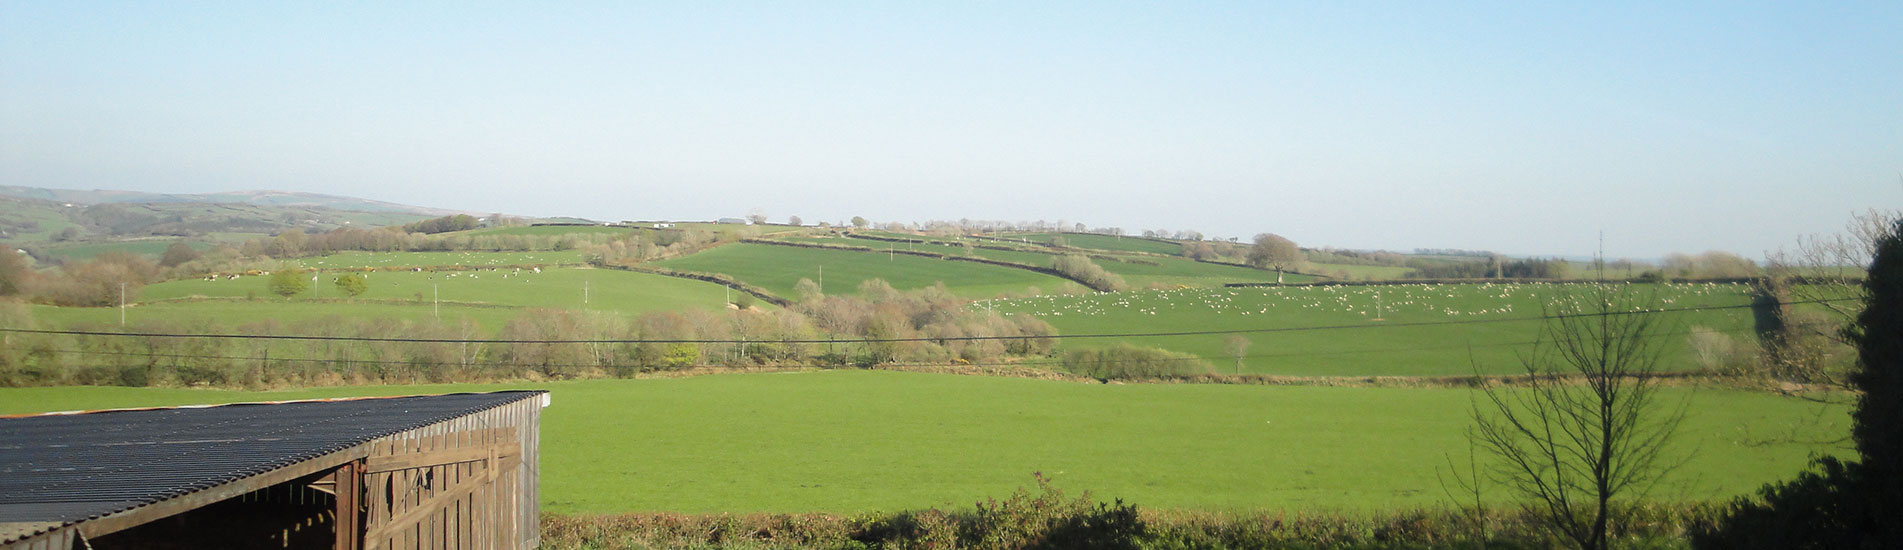 Views from Kimbland Farm, Overlooking Exmoor